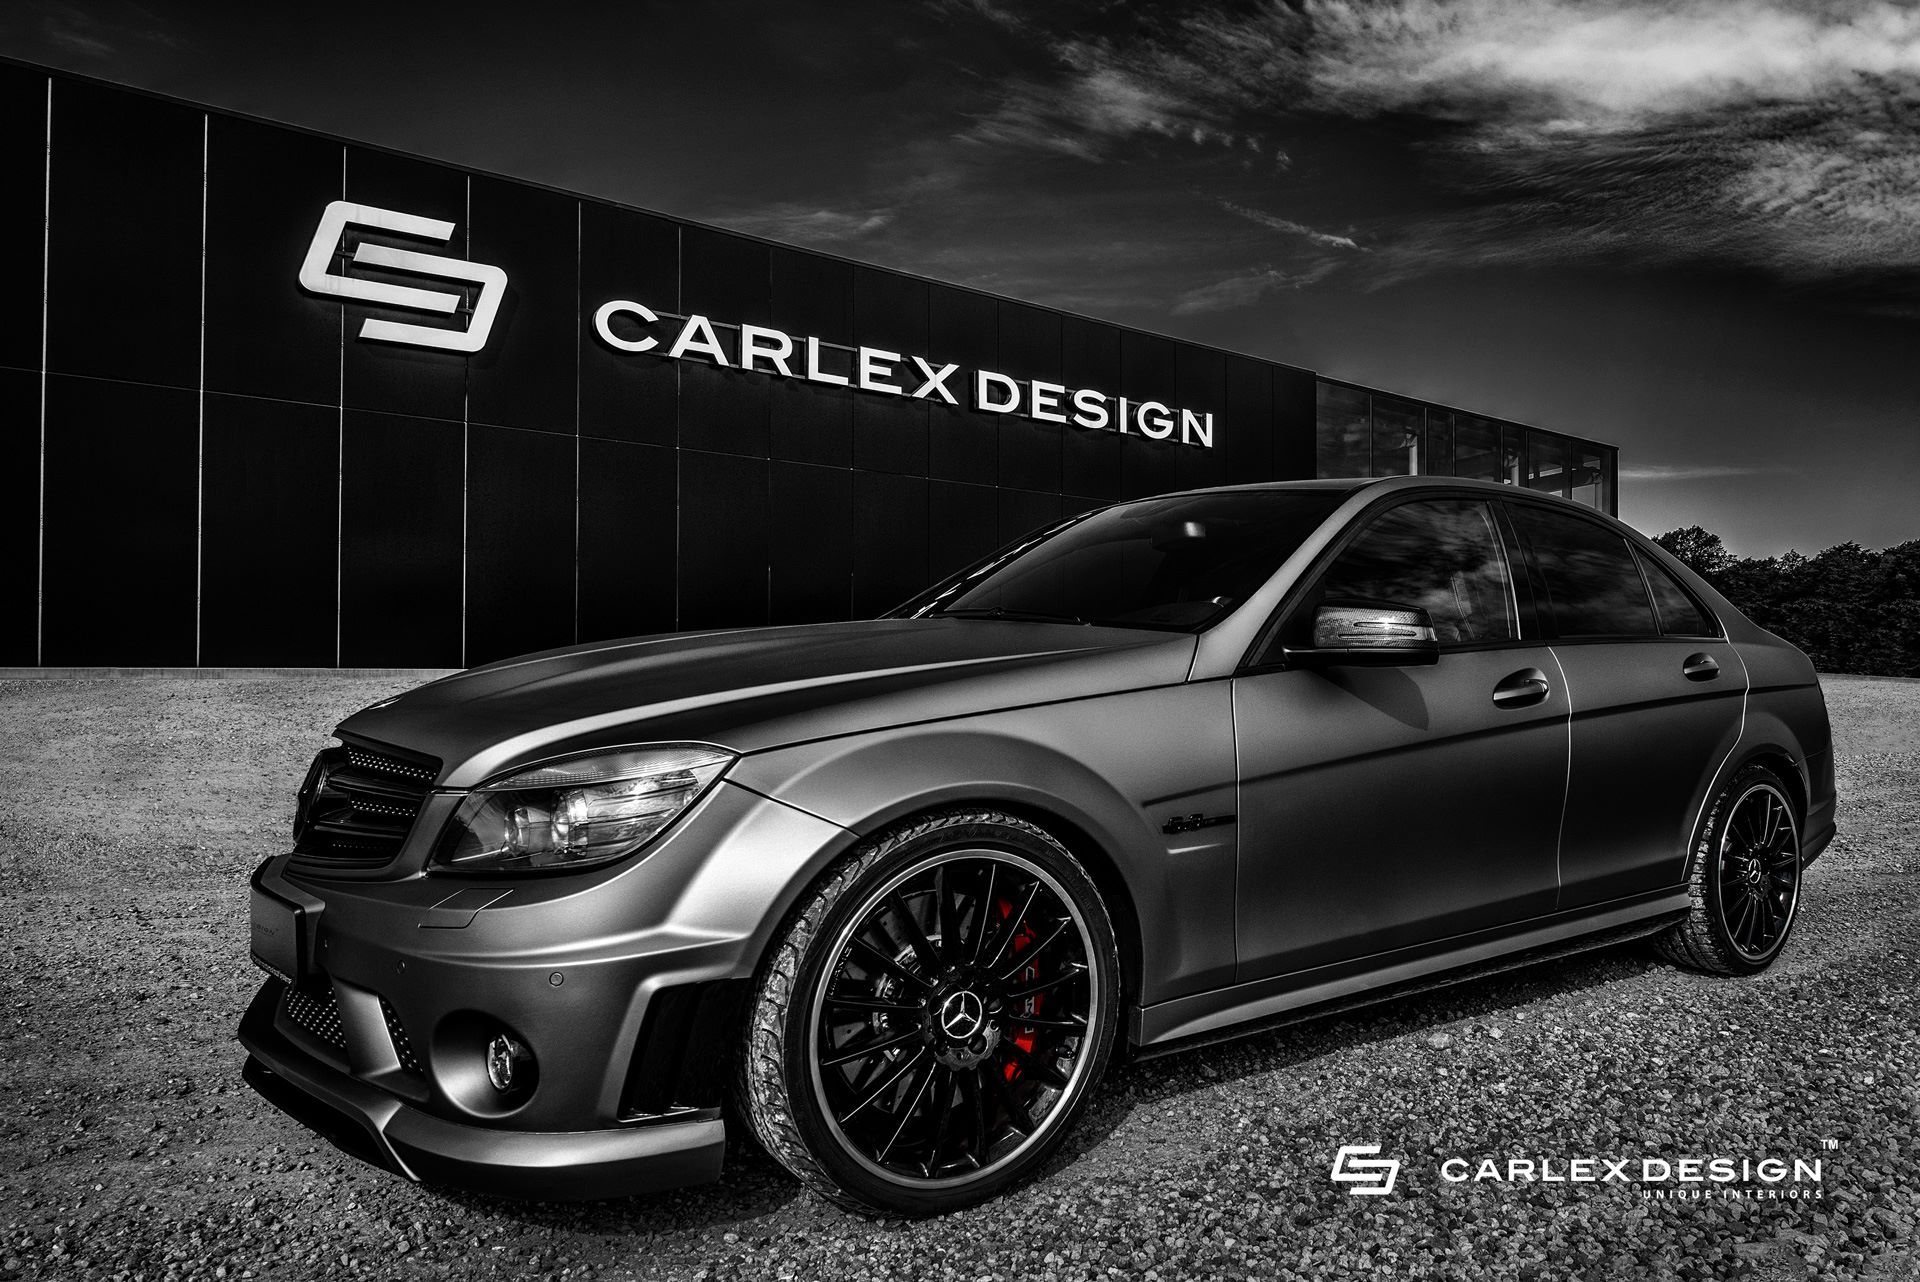 Mercedes-AMG C63 Gets Tuned by Carlex, Shows W204 Generation